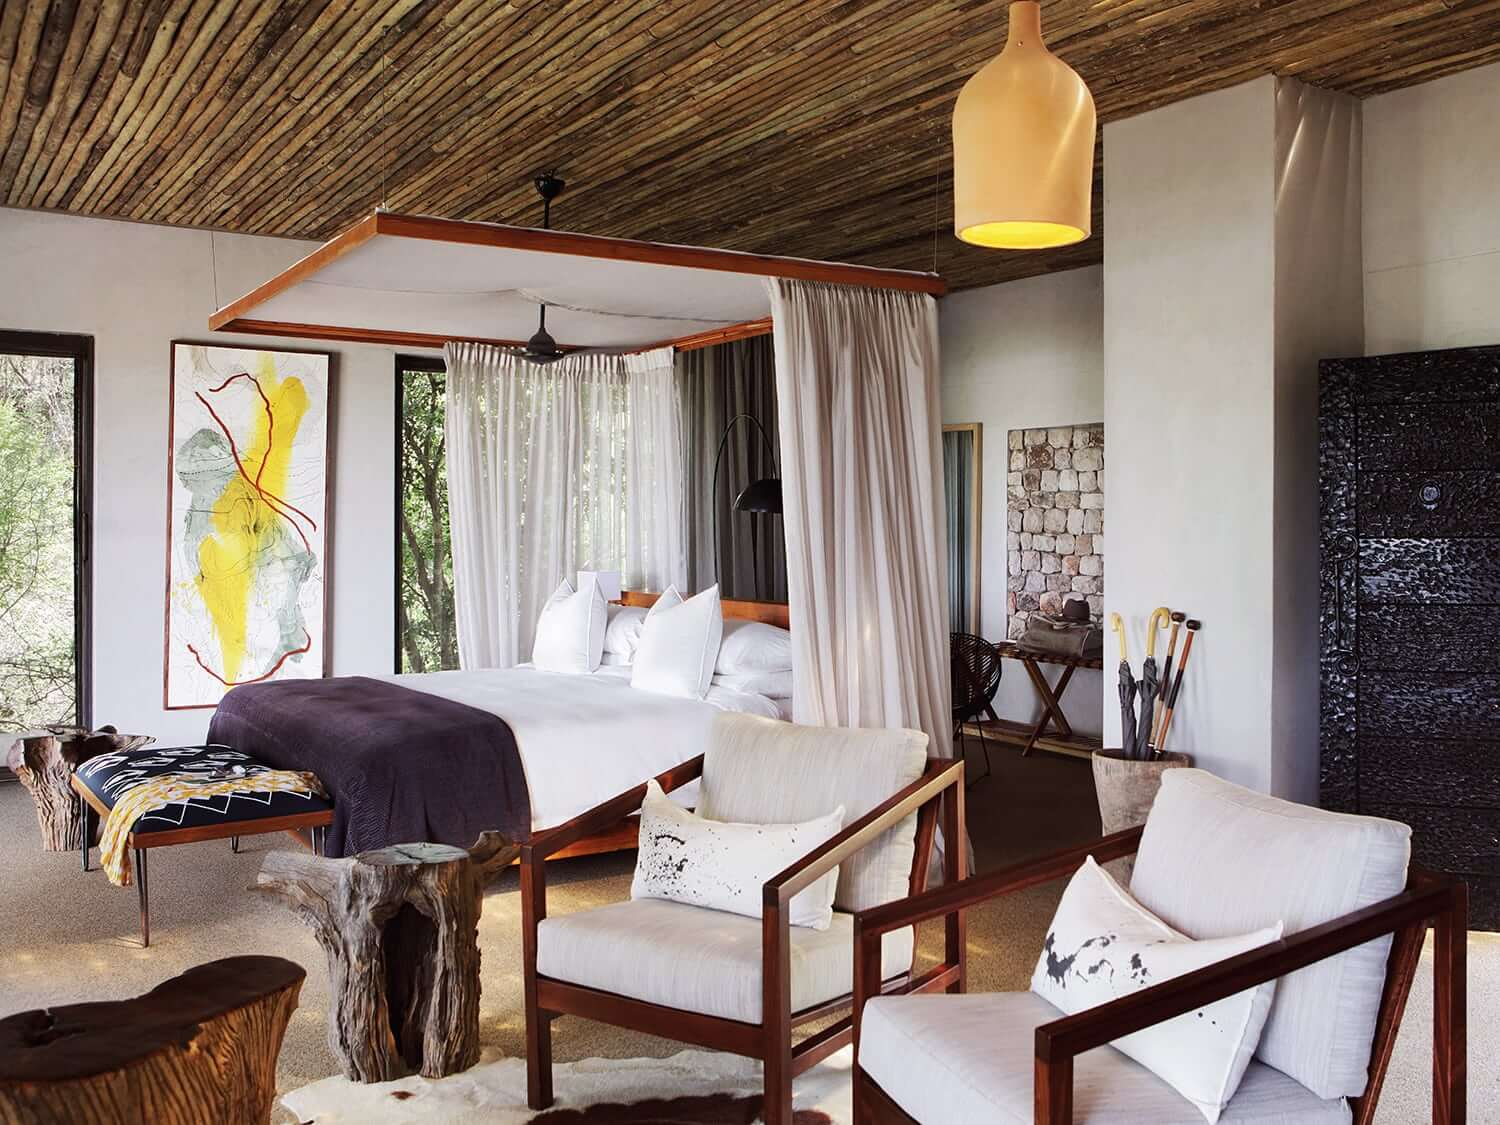 Interior of a luxurious suite at Matetsi Lodge, Victoria falls. Photo by Elsa Young.